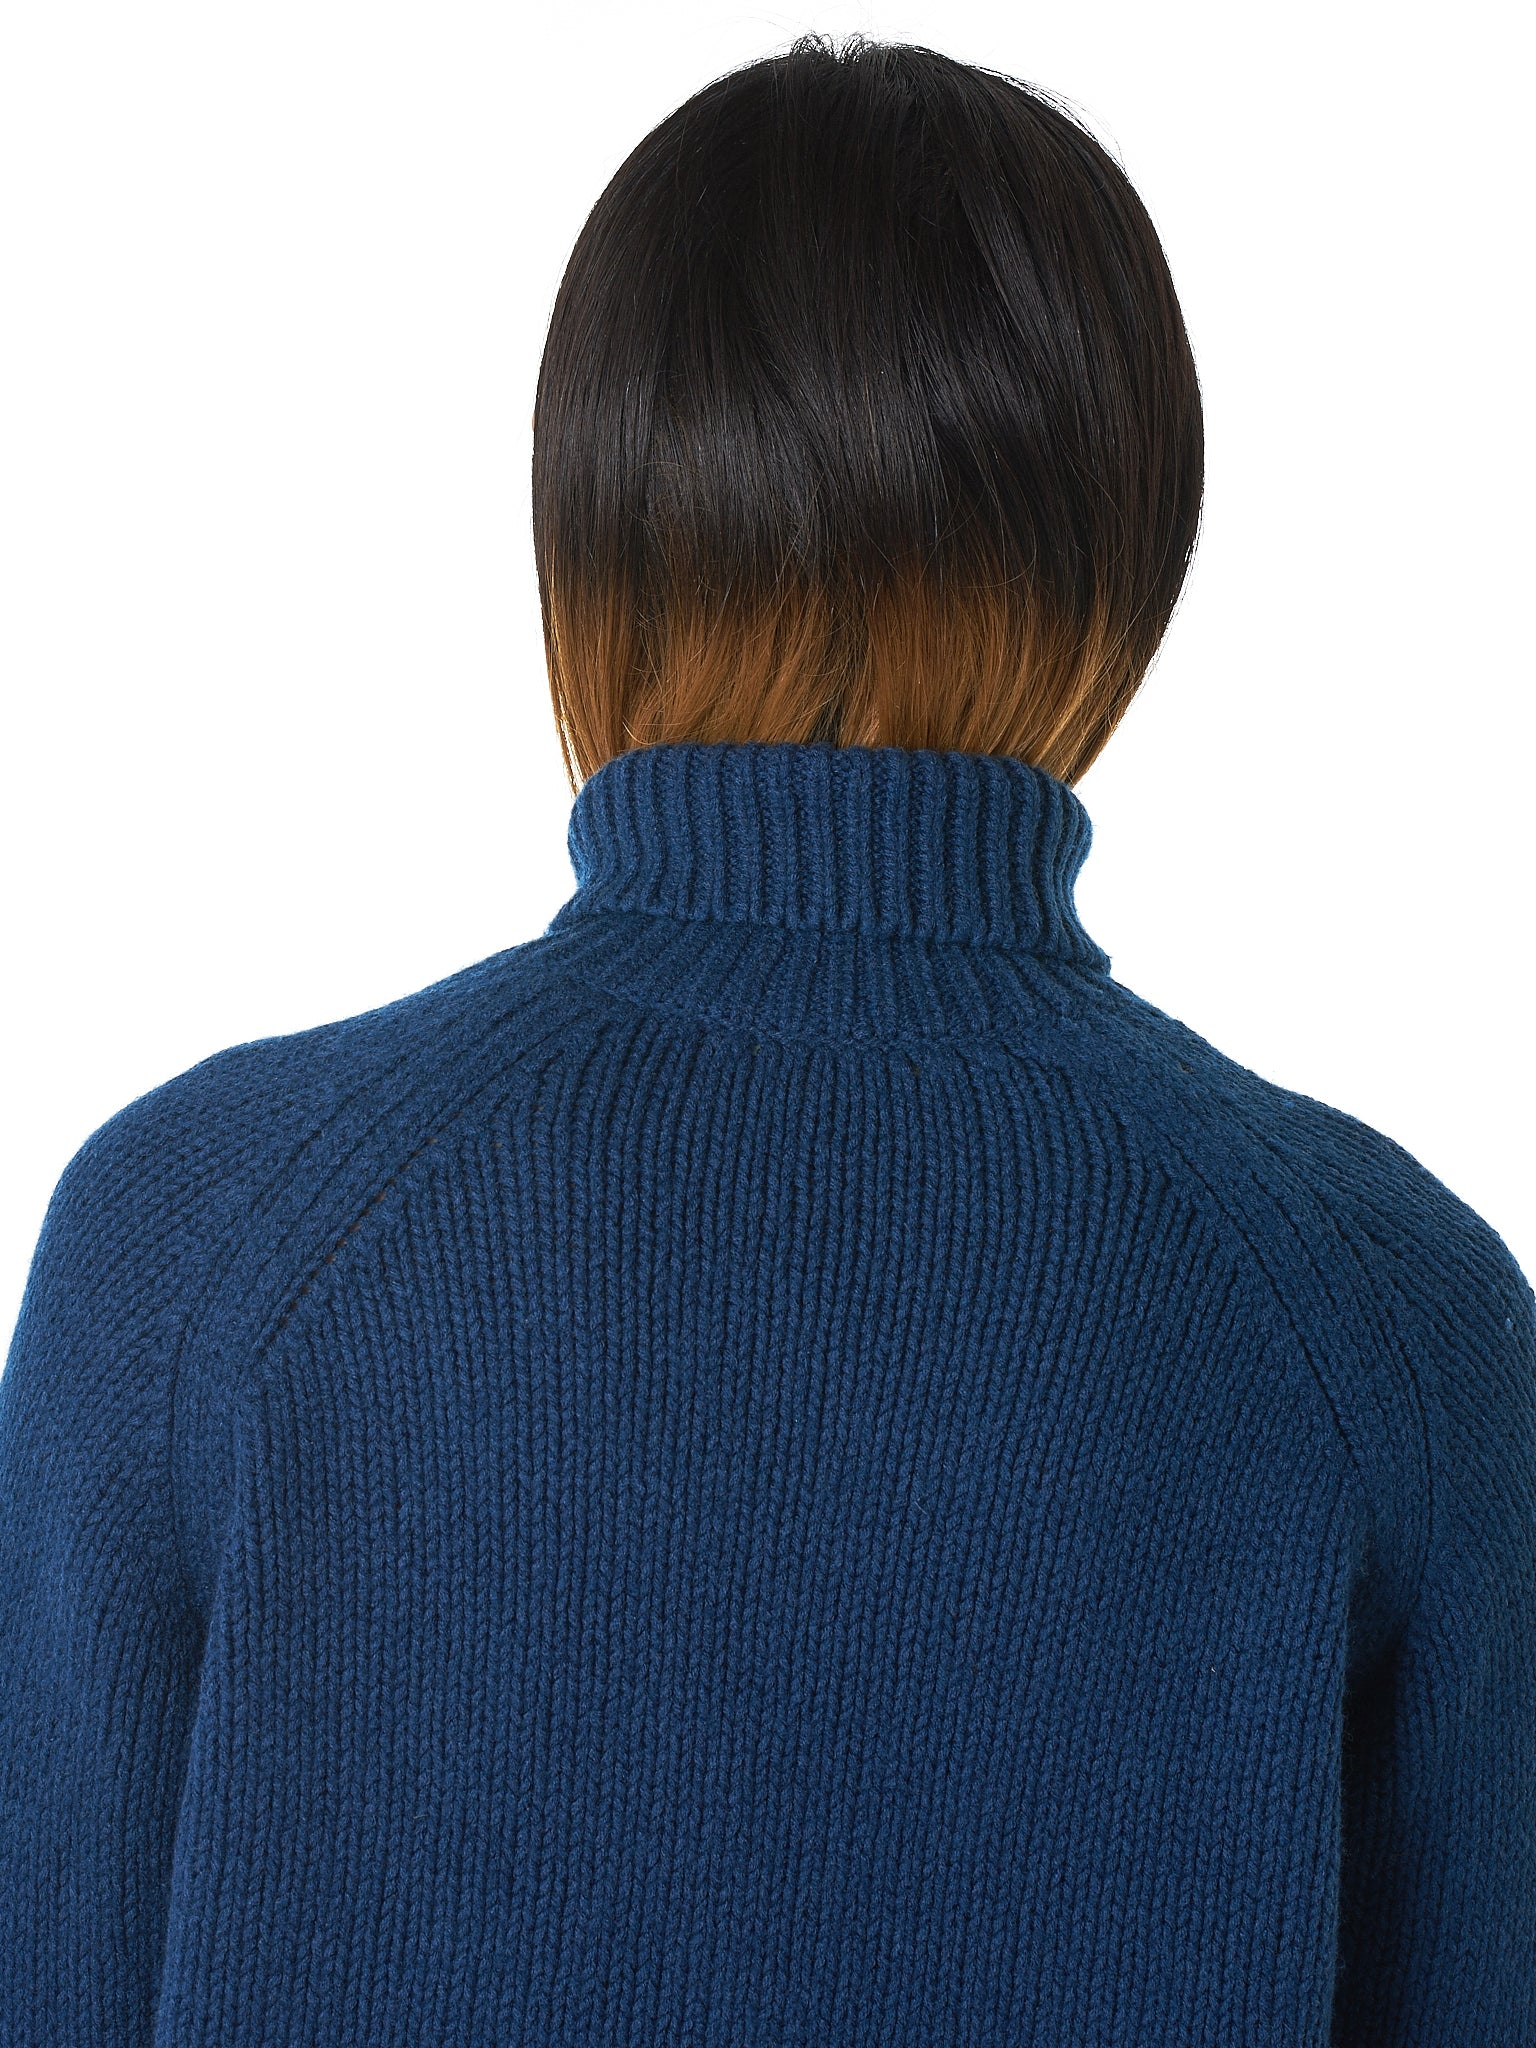 Bleu de Cocagne Turtleneck Sweater - Hlorenzo Detail 3